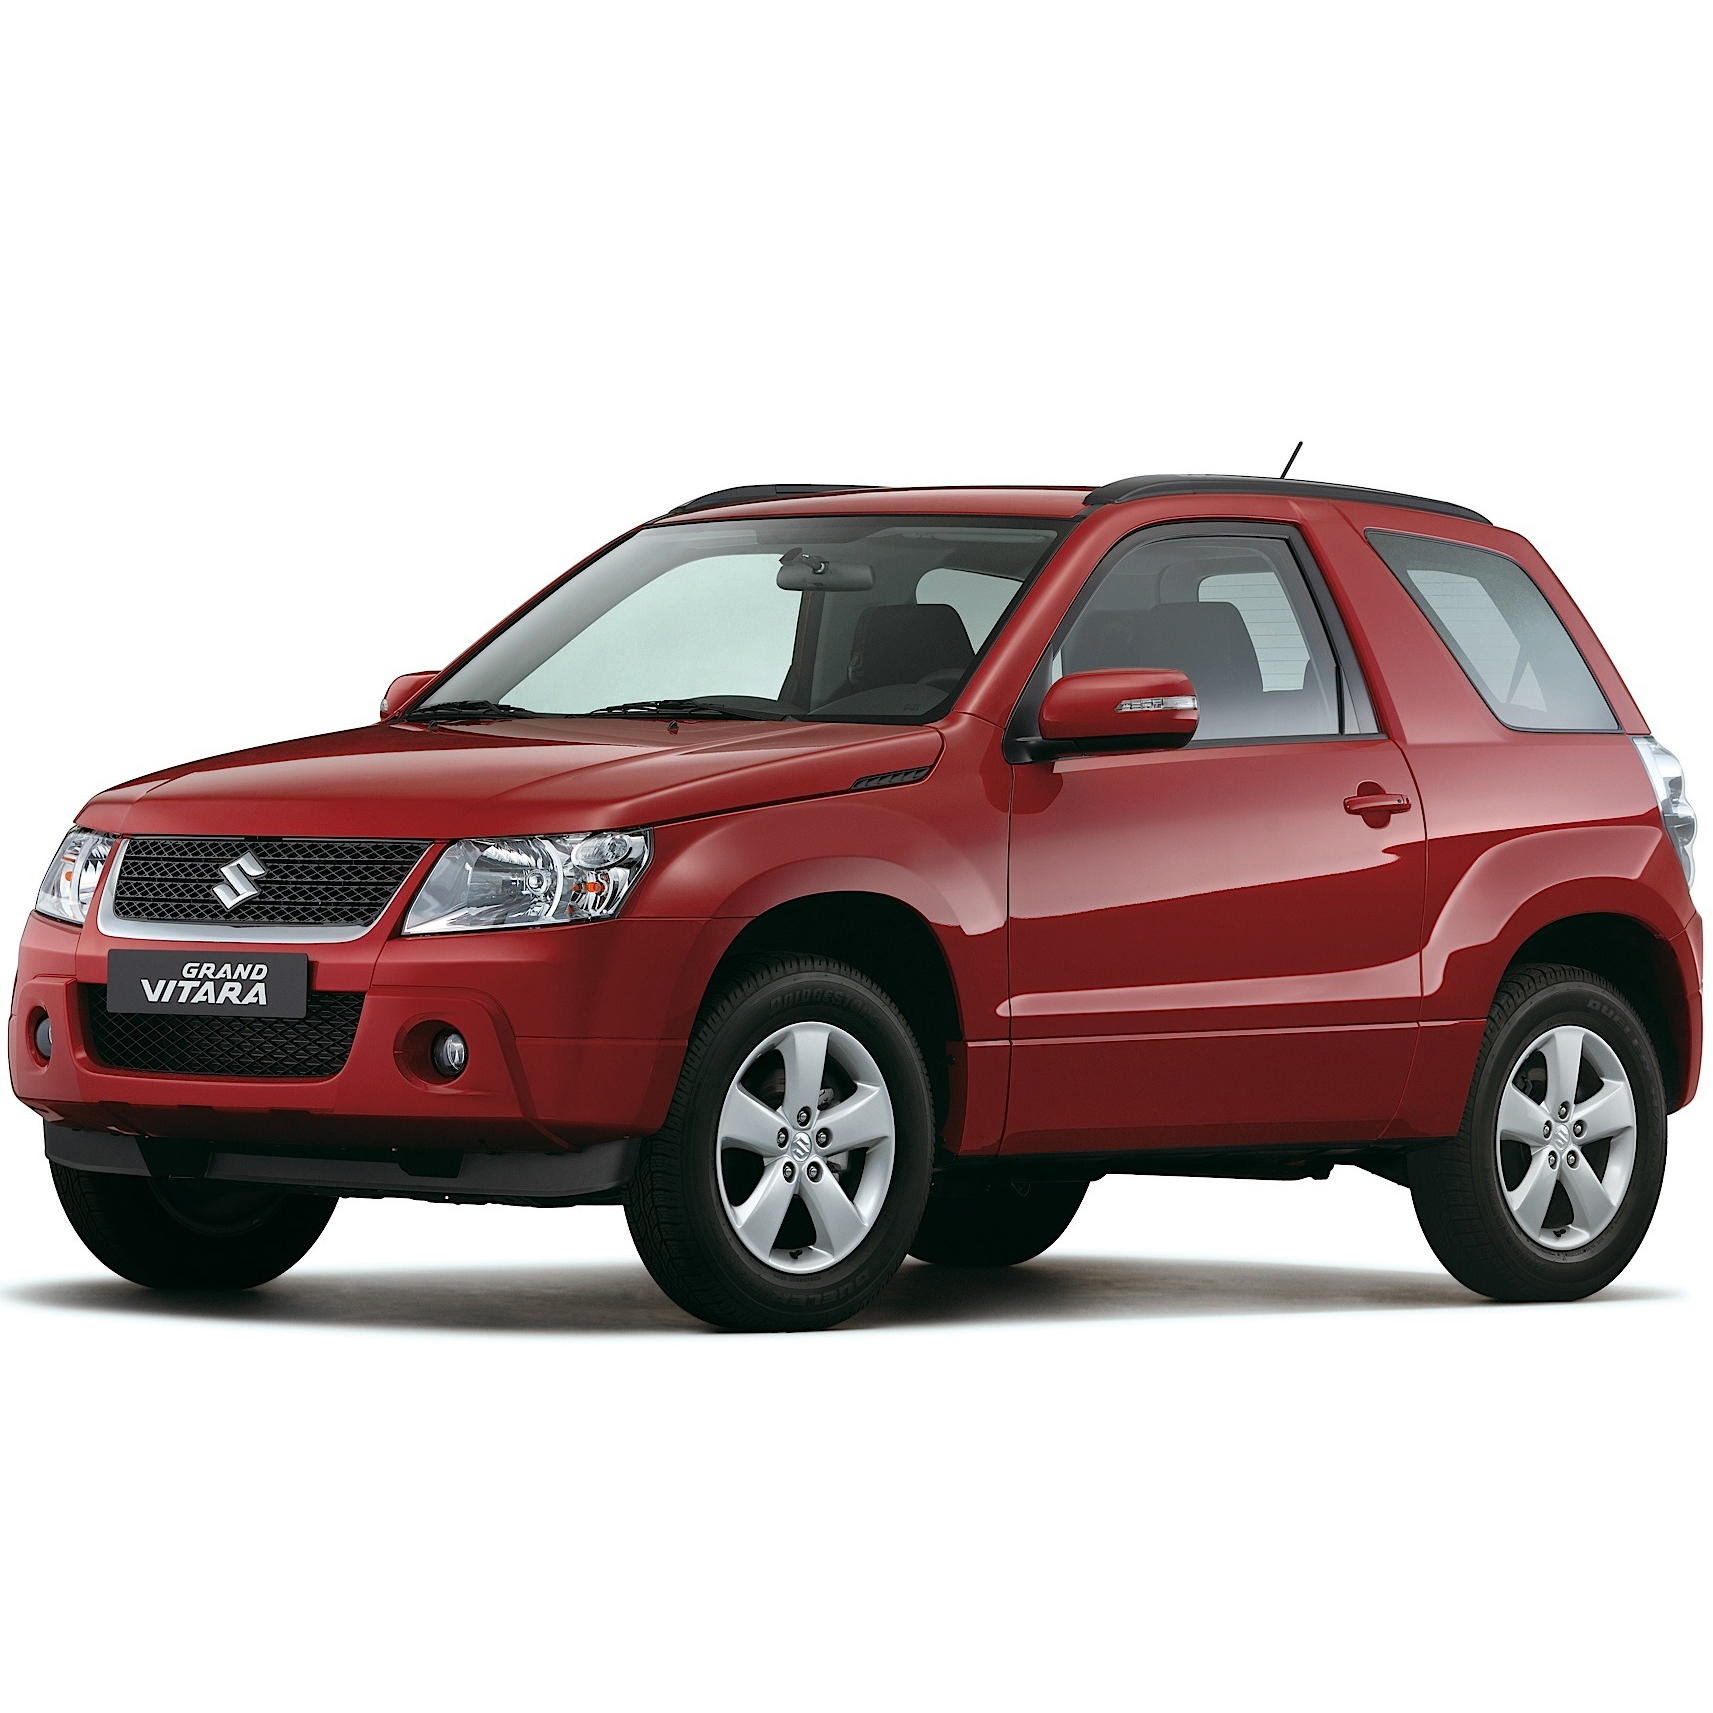 Suzuki Grand Vitara (3 door) 2005 - 2015